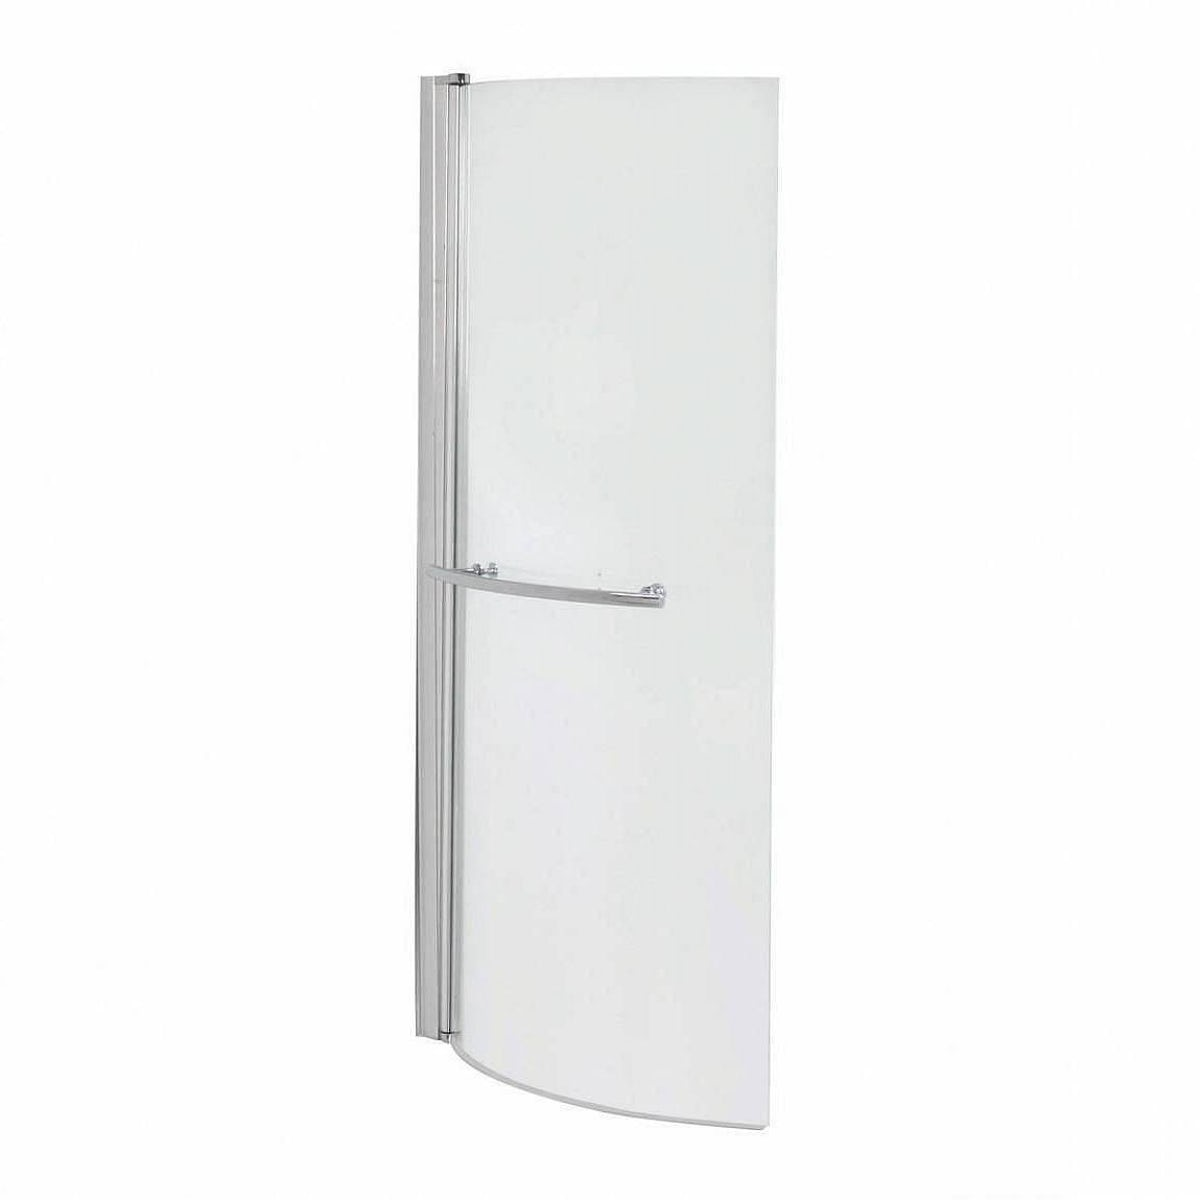 P Shaped Shower Baths Orchard P Shaped Left Handed Shower Bath 1500mm With 6mm